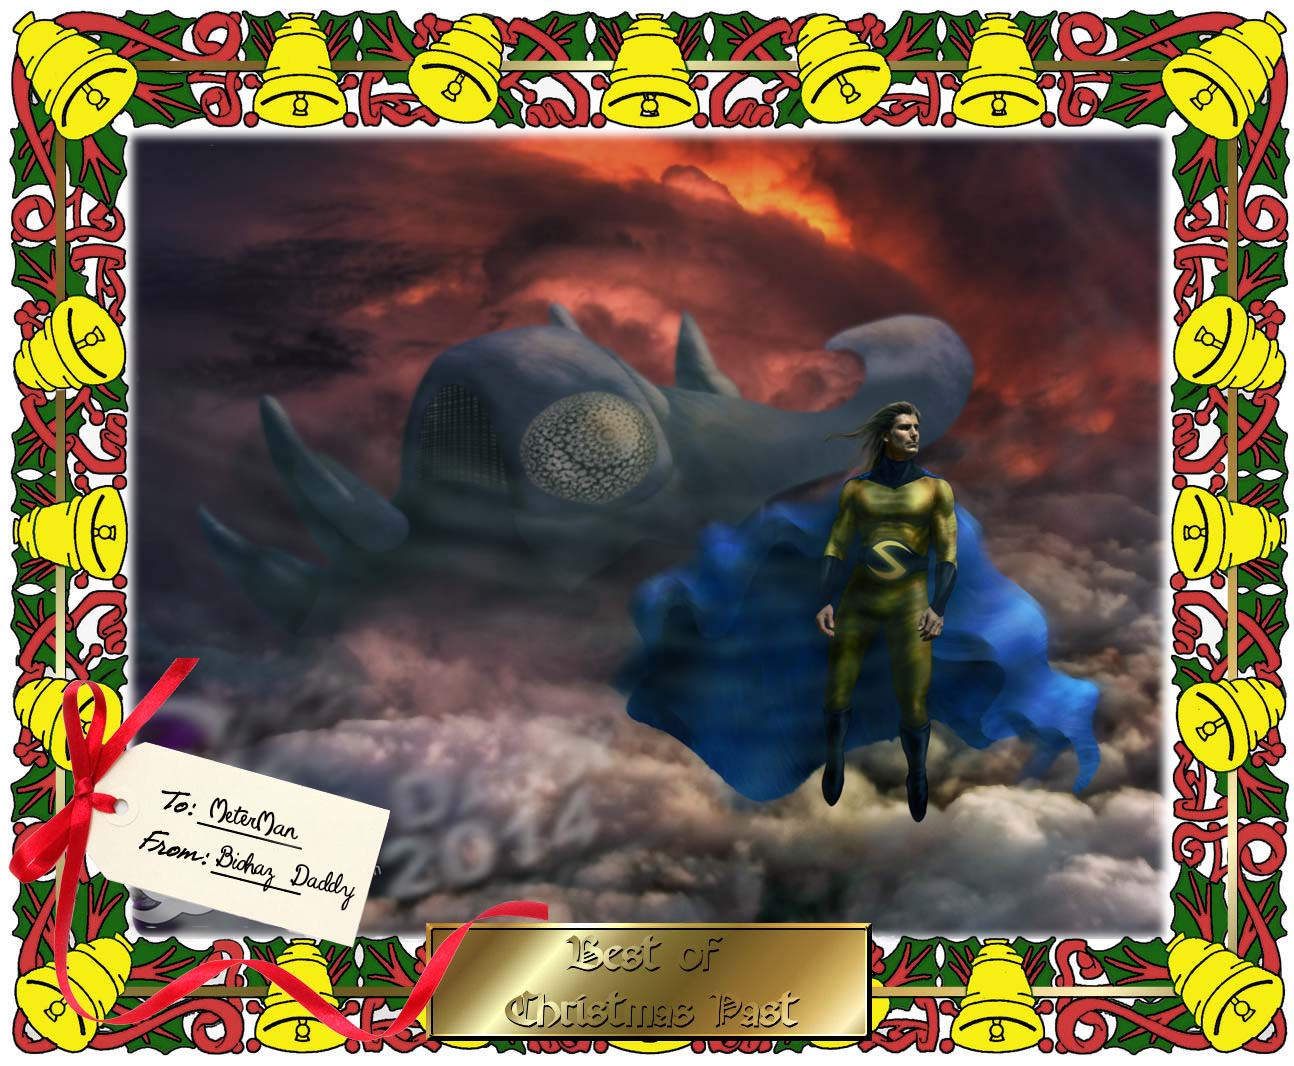 Best of Christmas Past - BioHaz Daddy